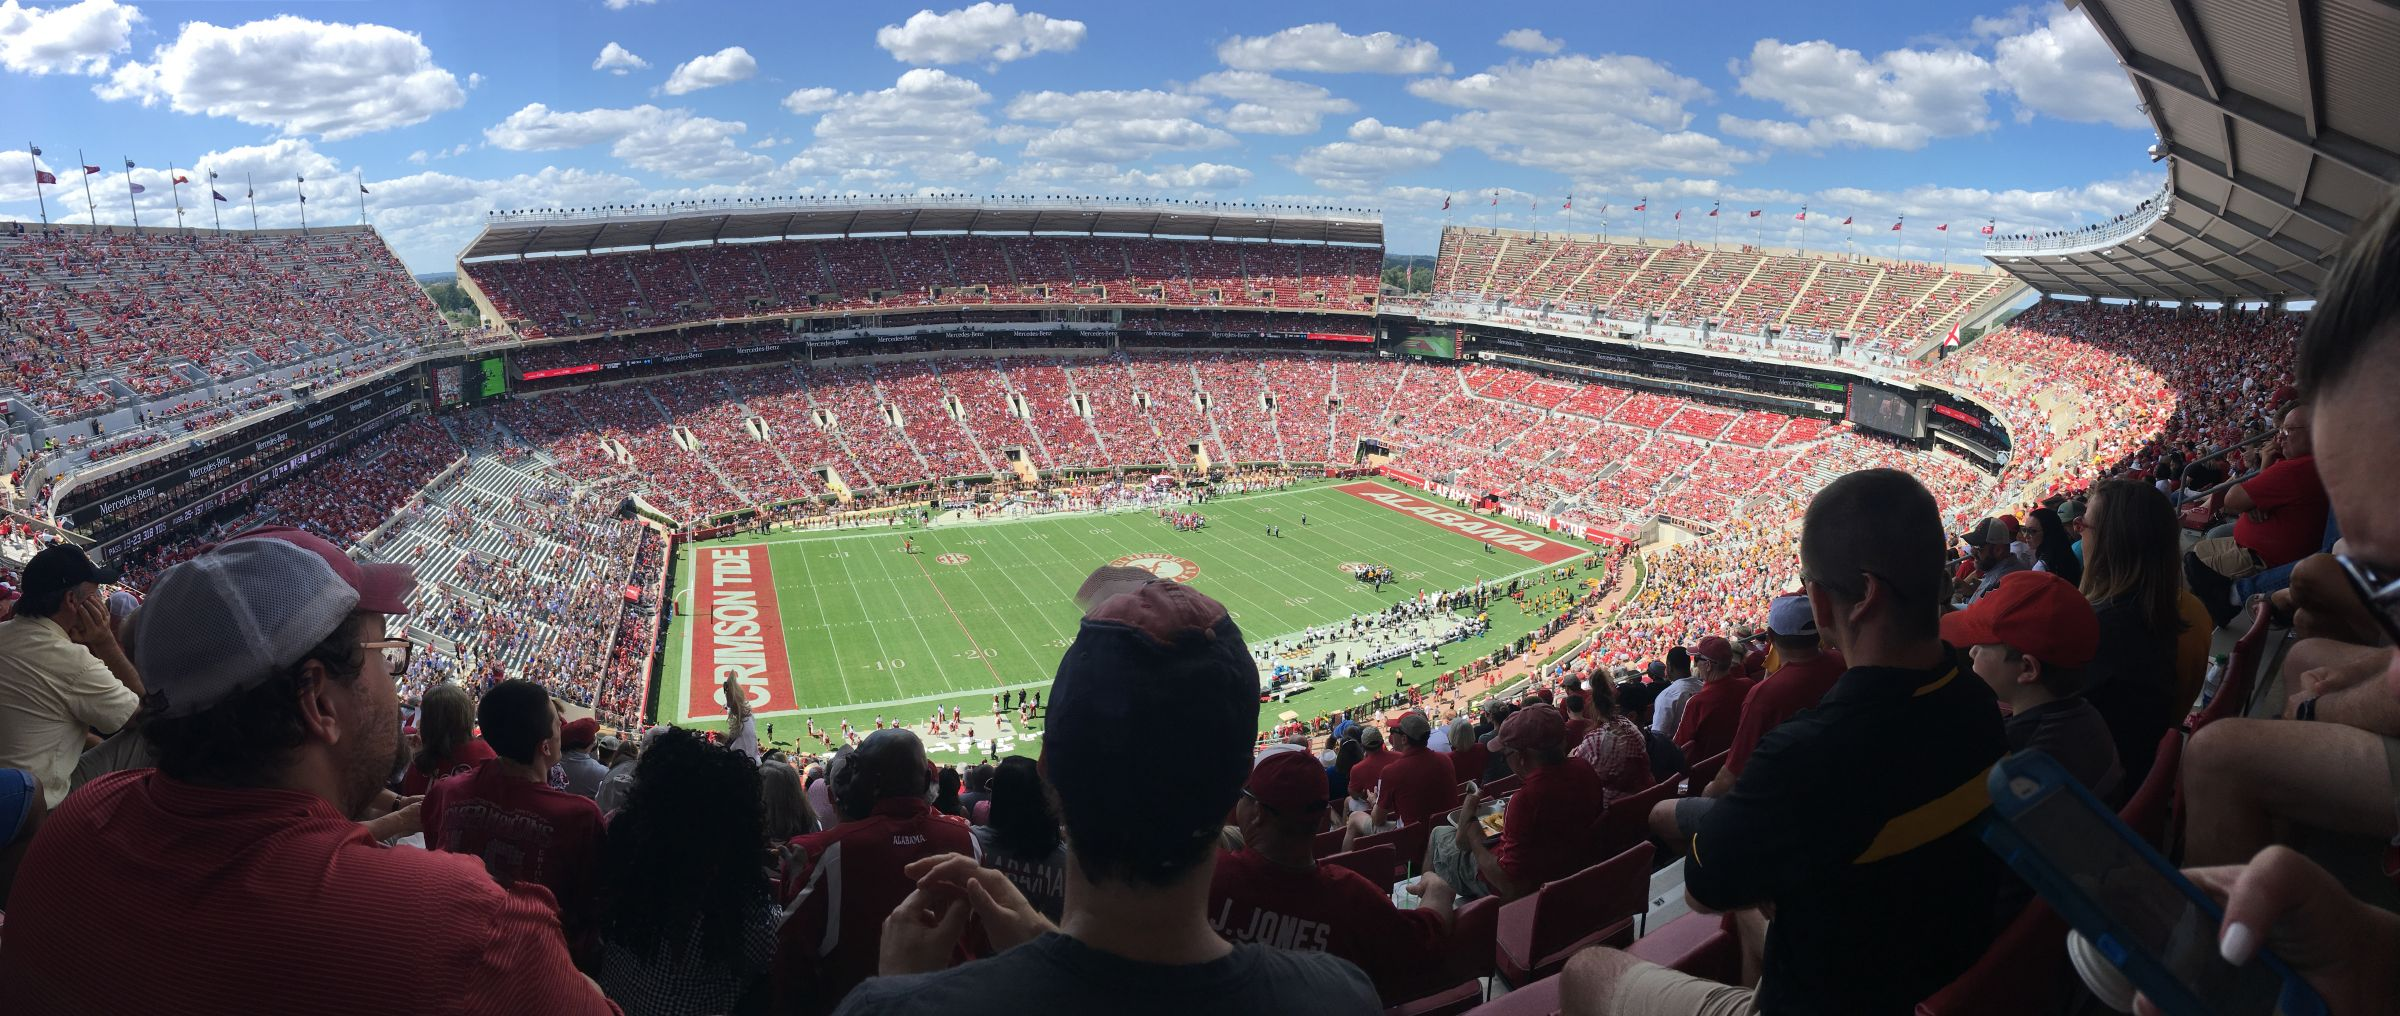 Seat View for Bryant-Denny Stadium Section U4EE, Row 25